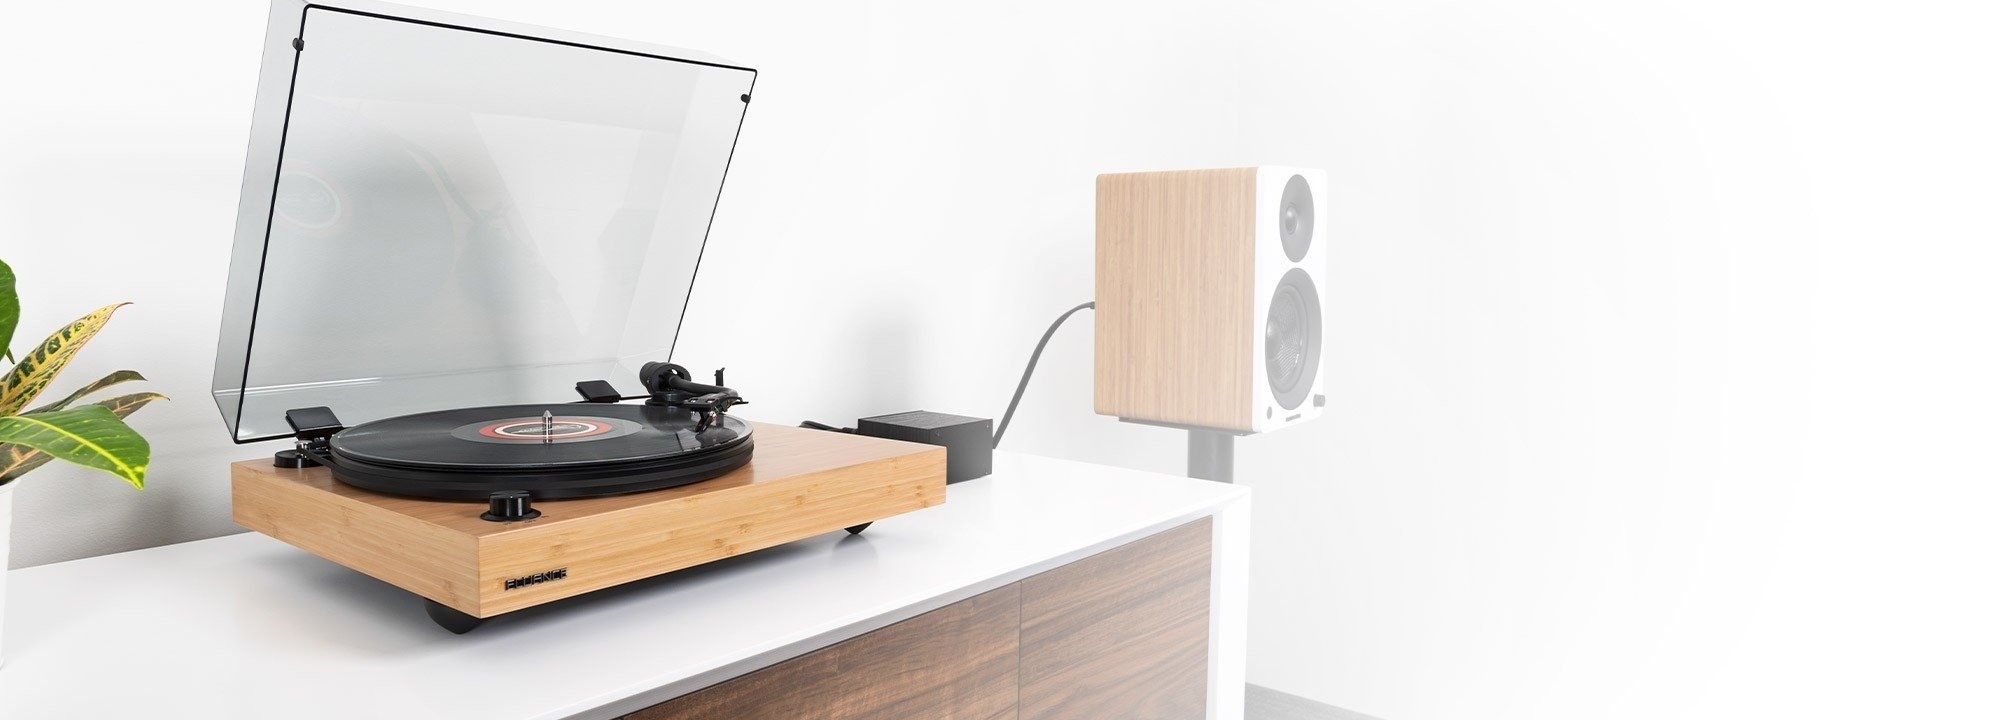 RT82B Reference High Fidelity Vinyl Turntable - Lifestyle